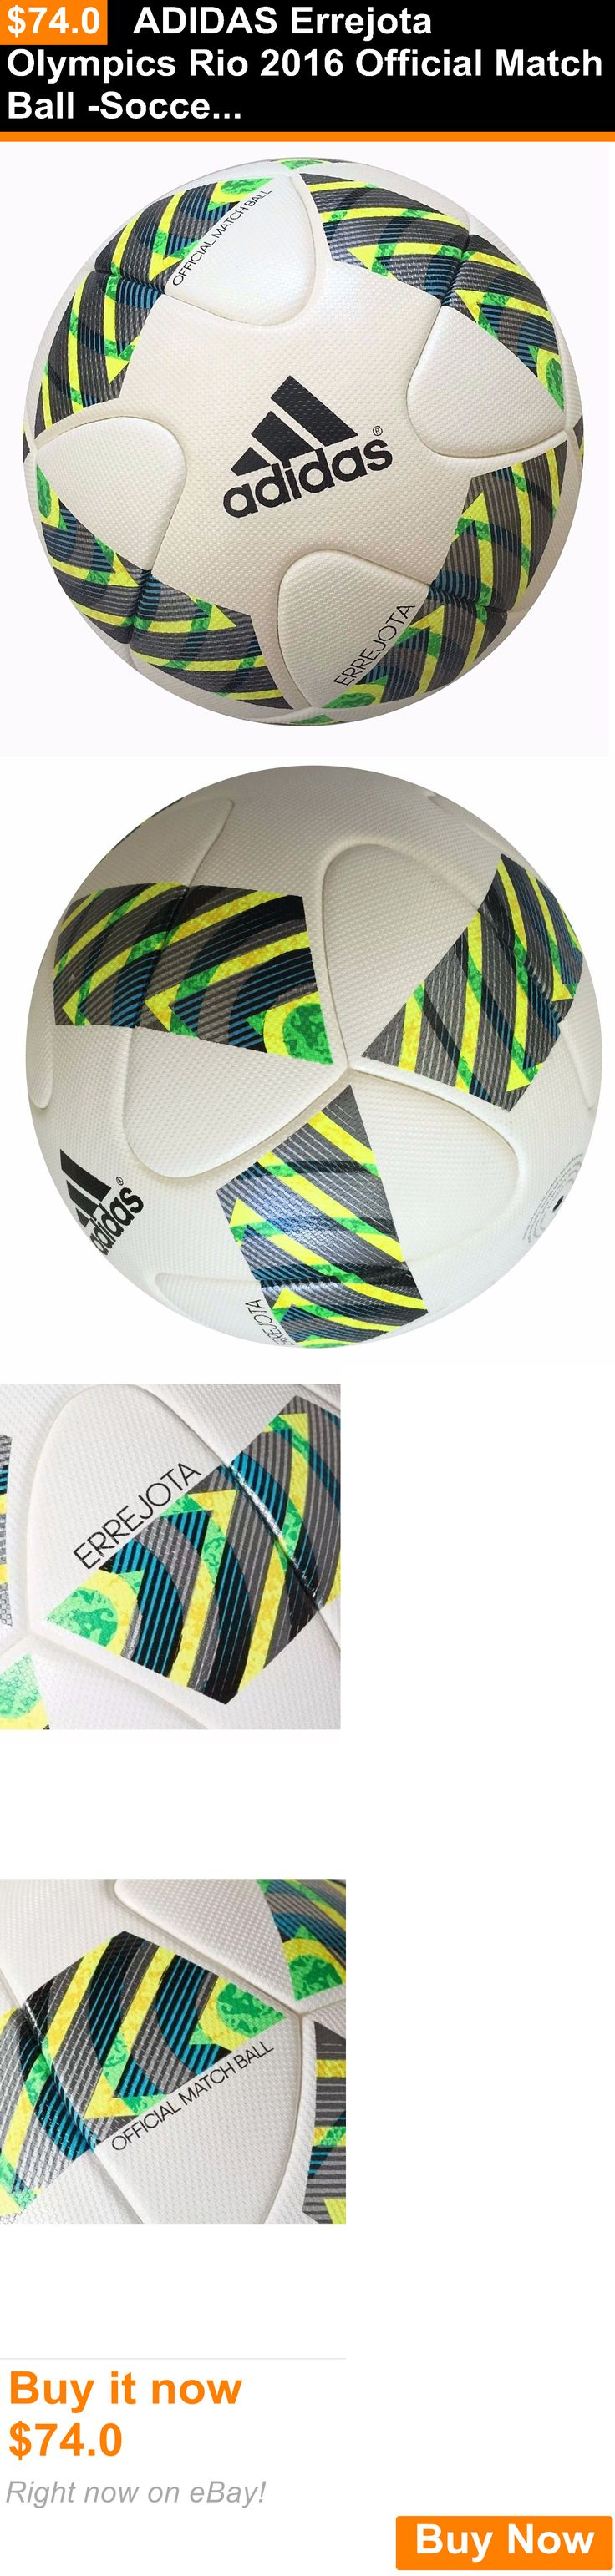 Balls 20863: Adidas Errejota Olympics Rio 2016 Official Match Ball -Soccer , Size 5 $160 New BUY IT NOW ONLY: $74.0